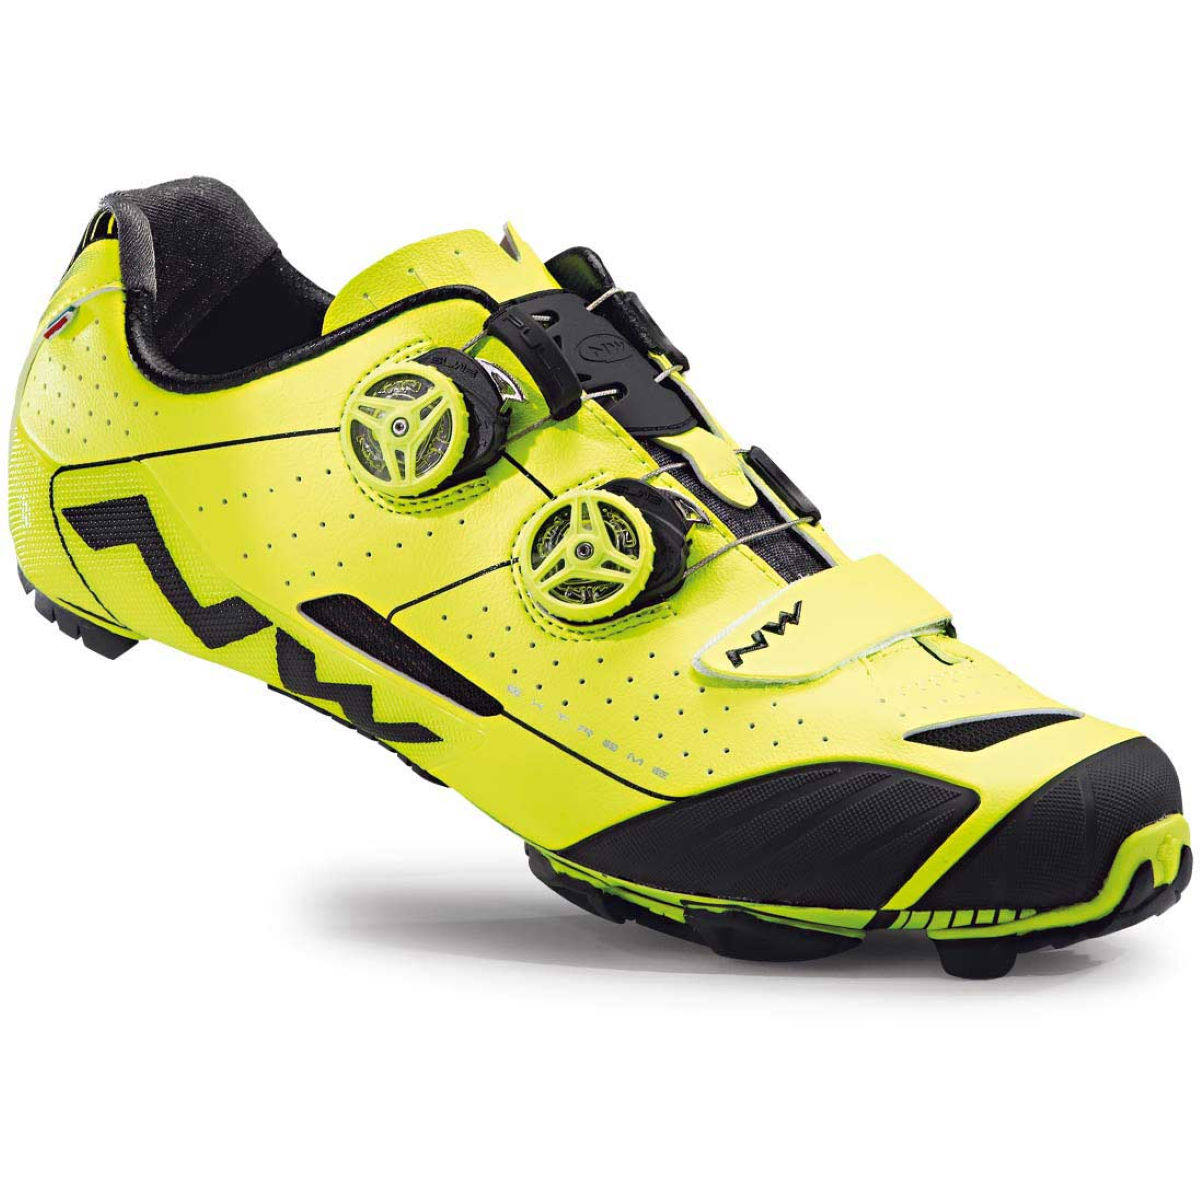 Chaussures VTT Northwave Extreme XC - 47 Fluo Yellow/Yellow